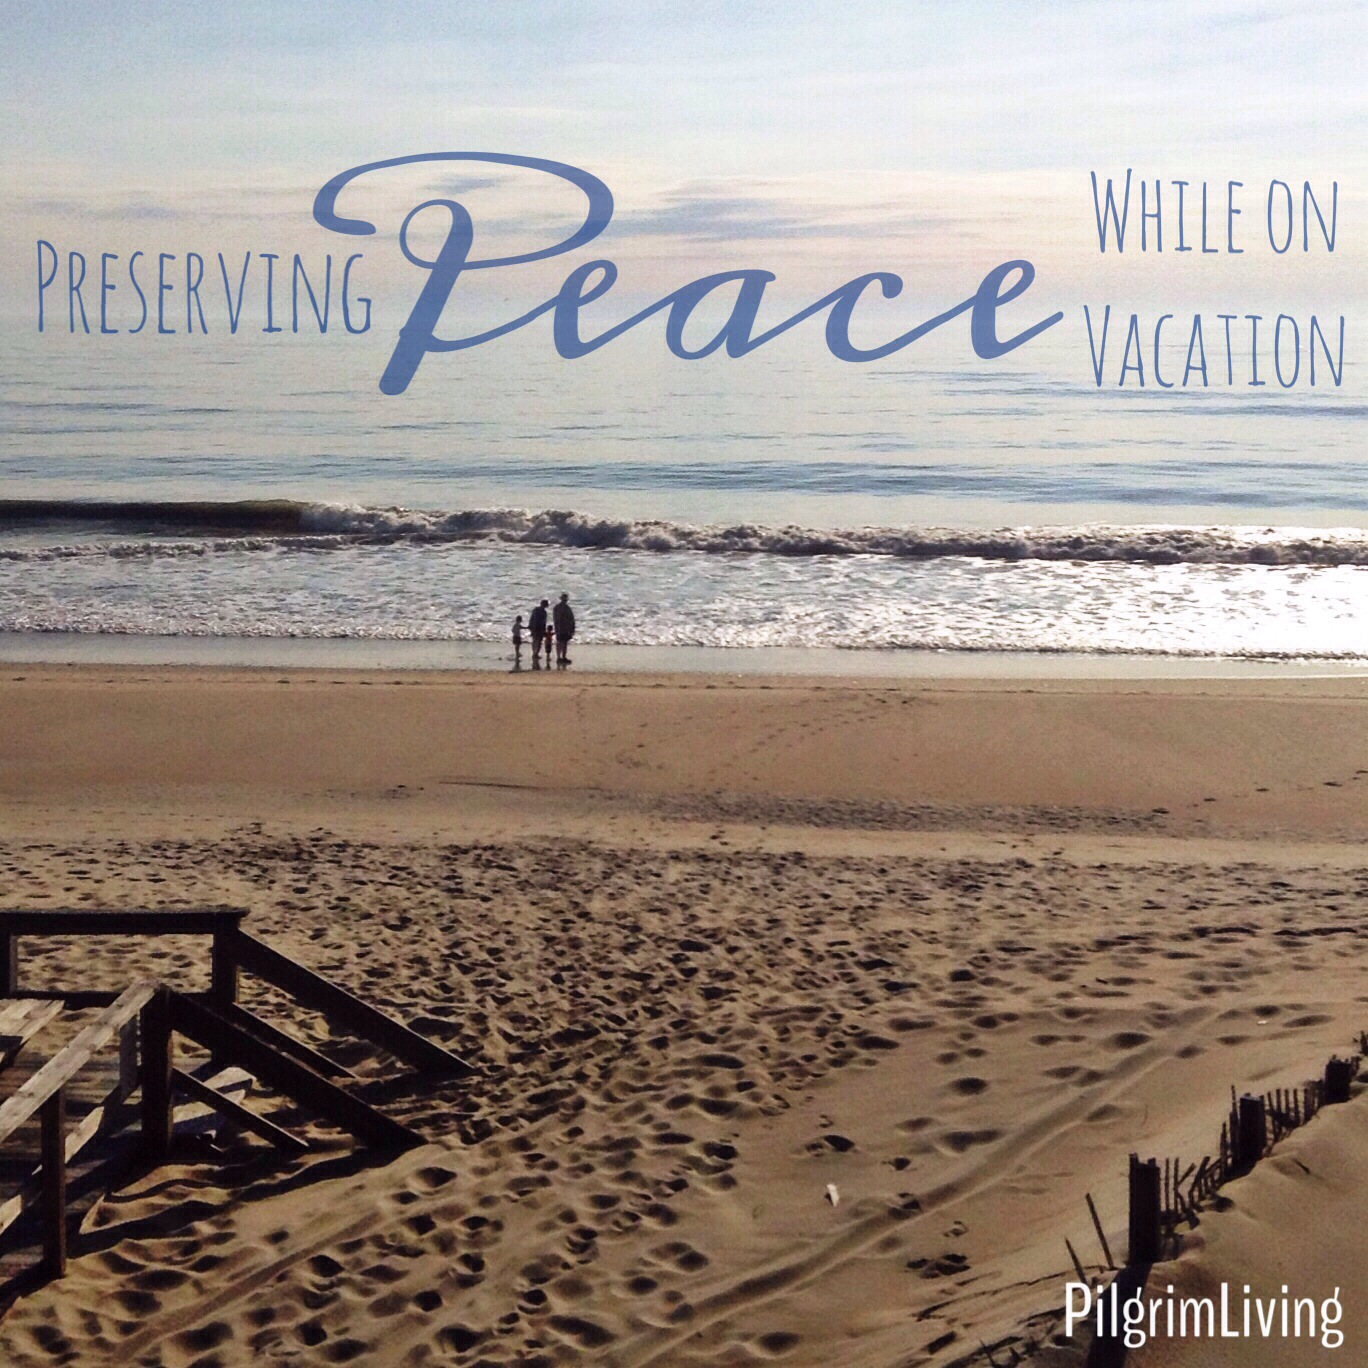 Preserving Peace While on Vacation